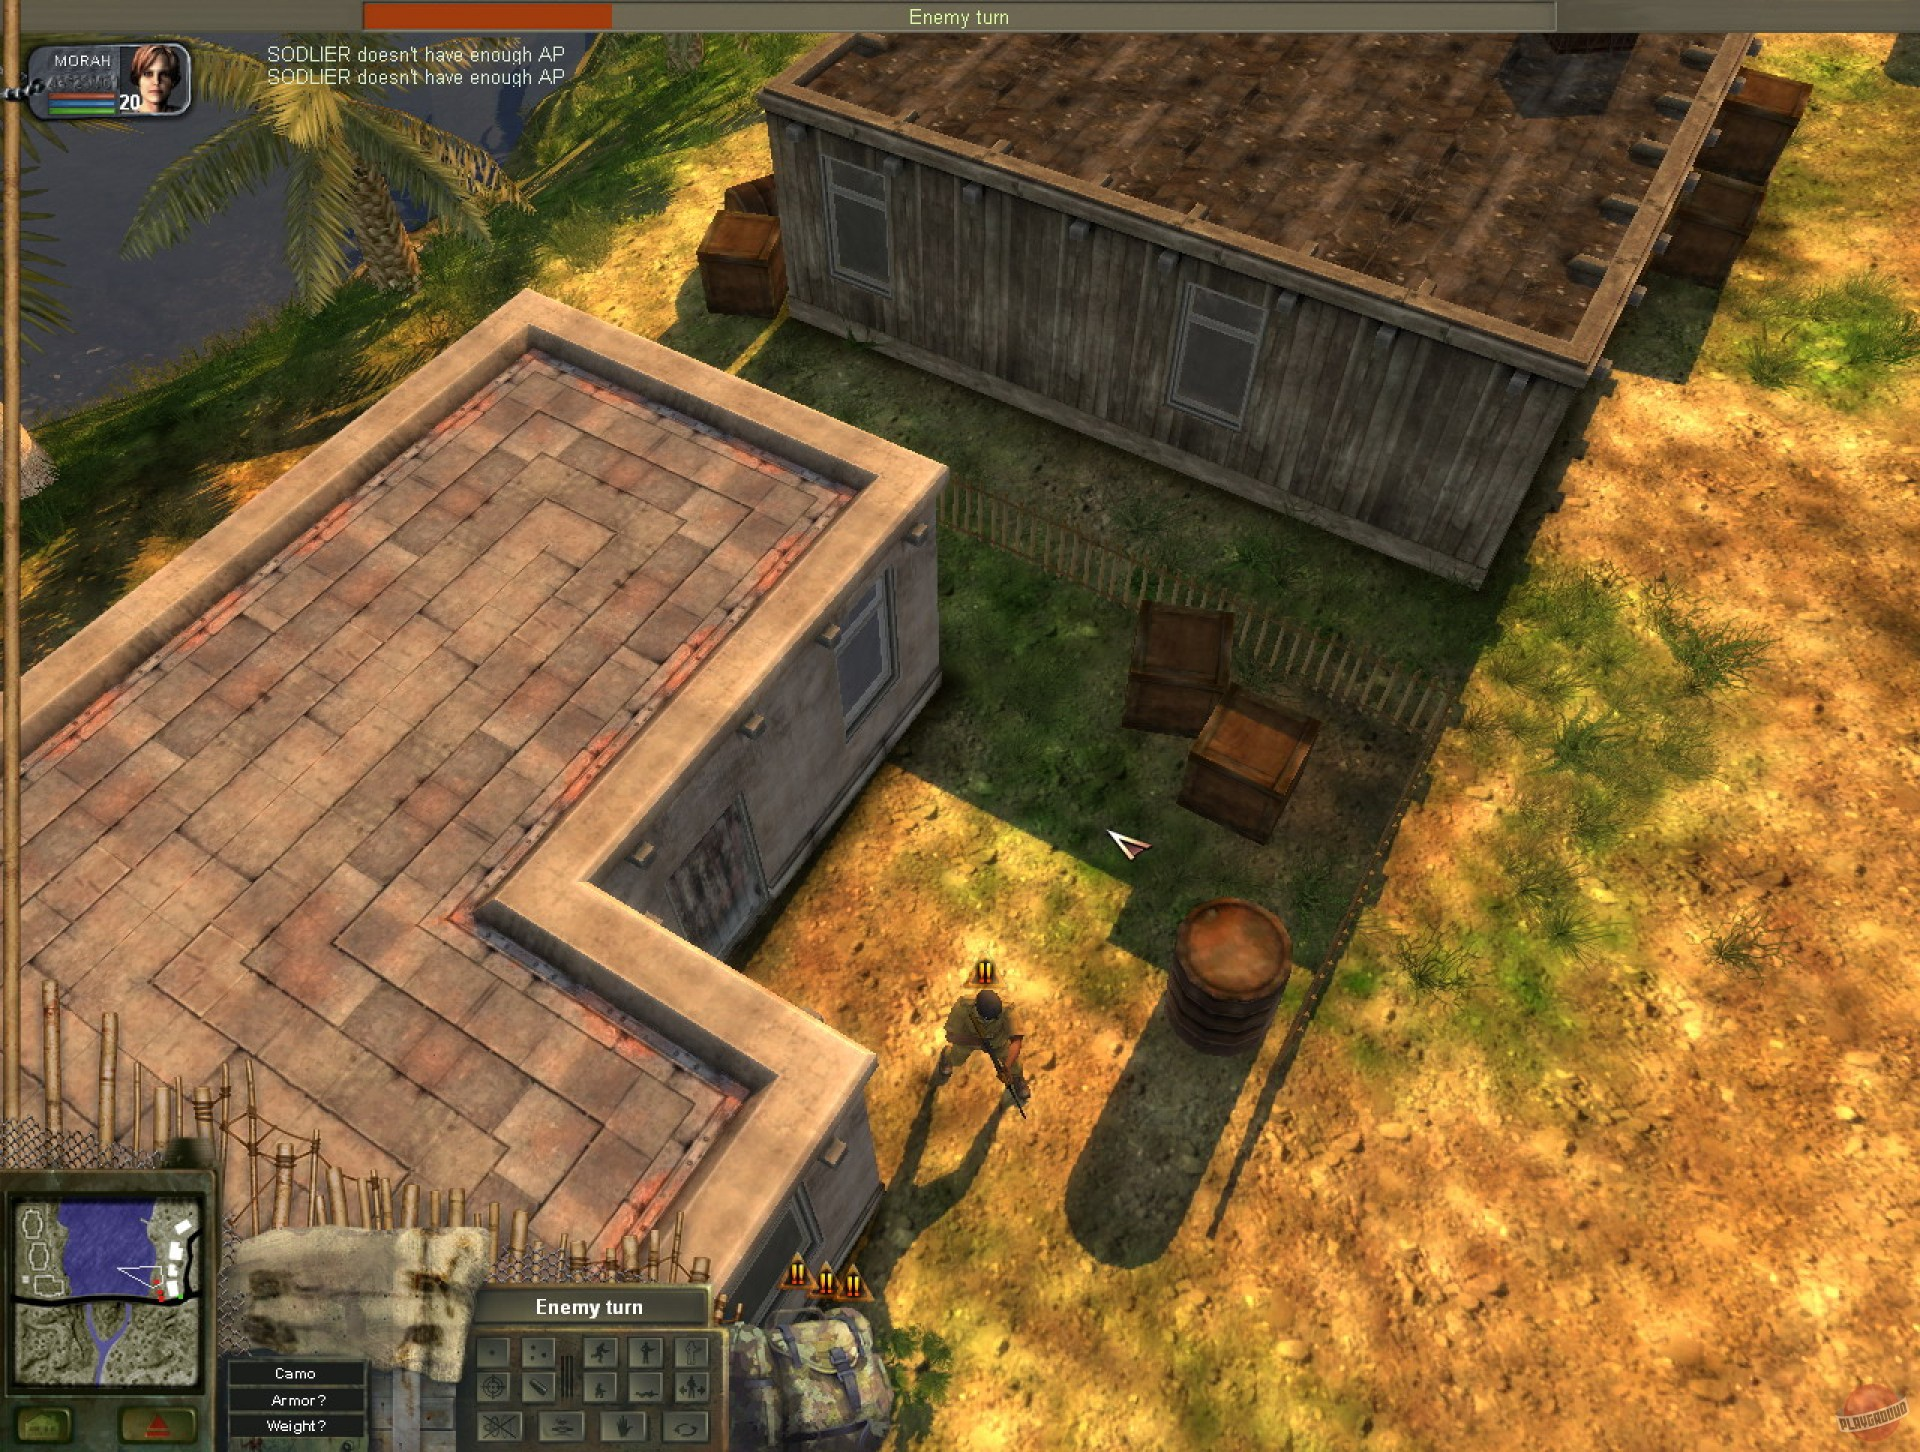 Jagged alliance: back in action is a contemporary of the latest title in the much-loved jagged alliance series of